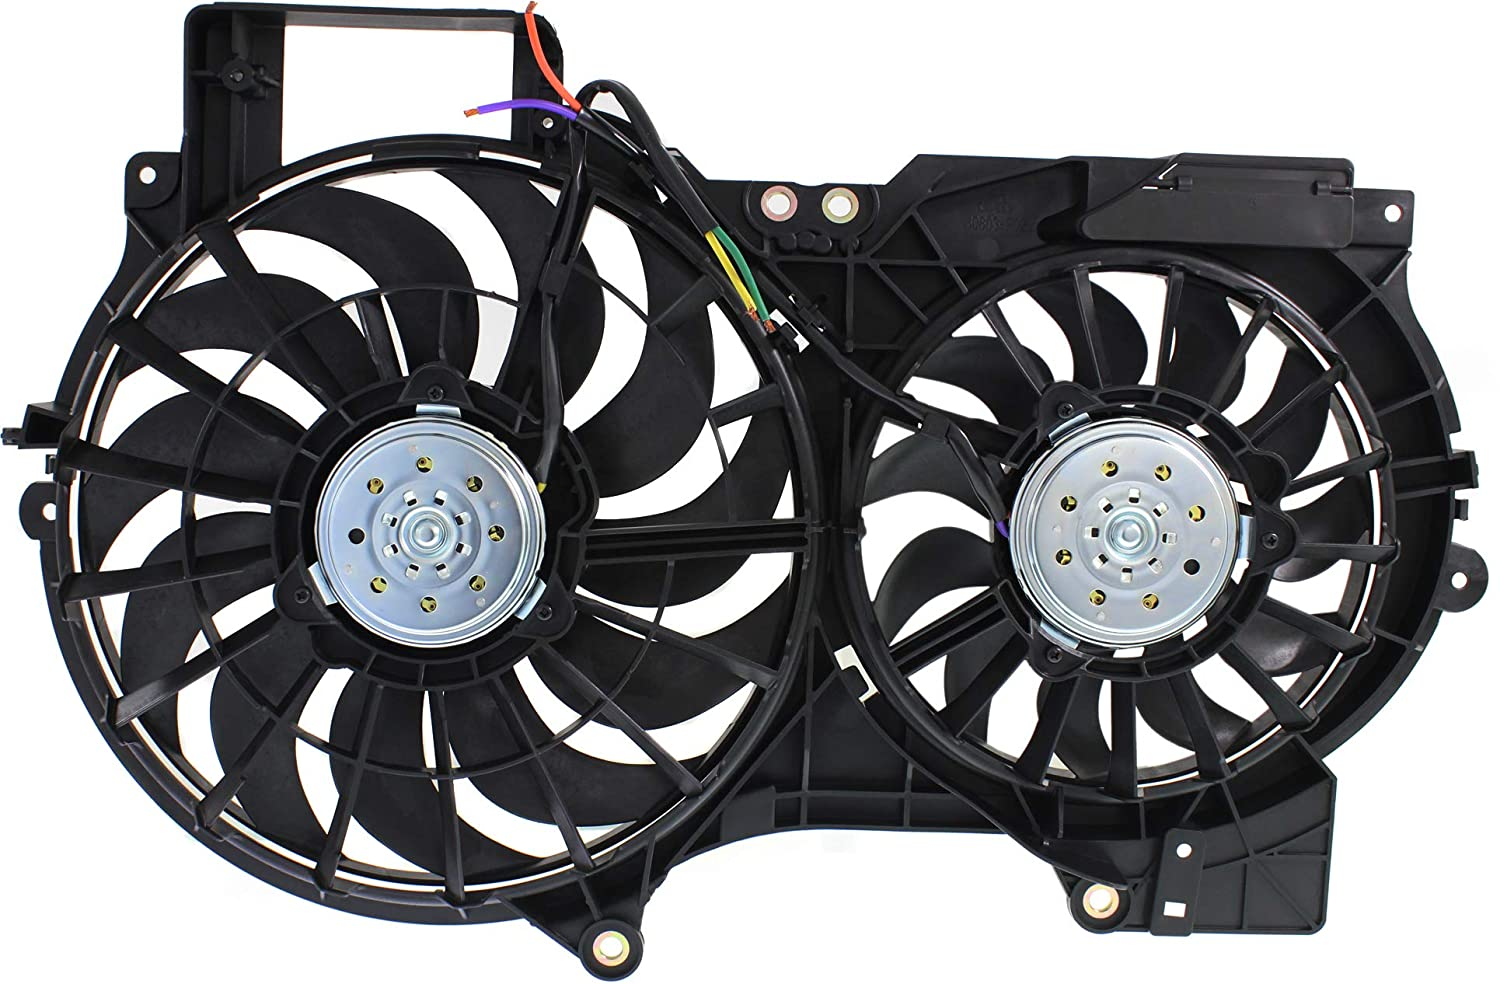 Garage-Pro Cooling Fan Assembly for AUDI A6 2005-2011 Dual Fan 3.0L/3.2L Engine